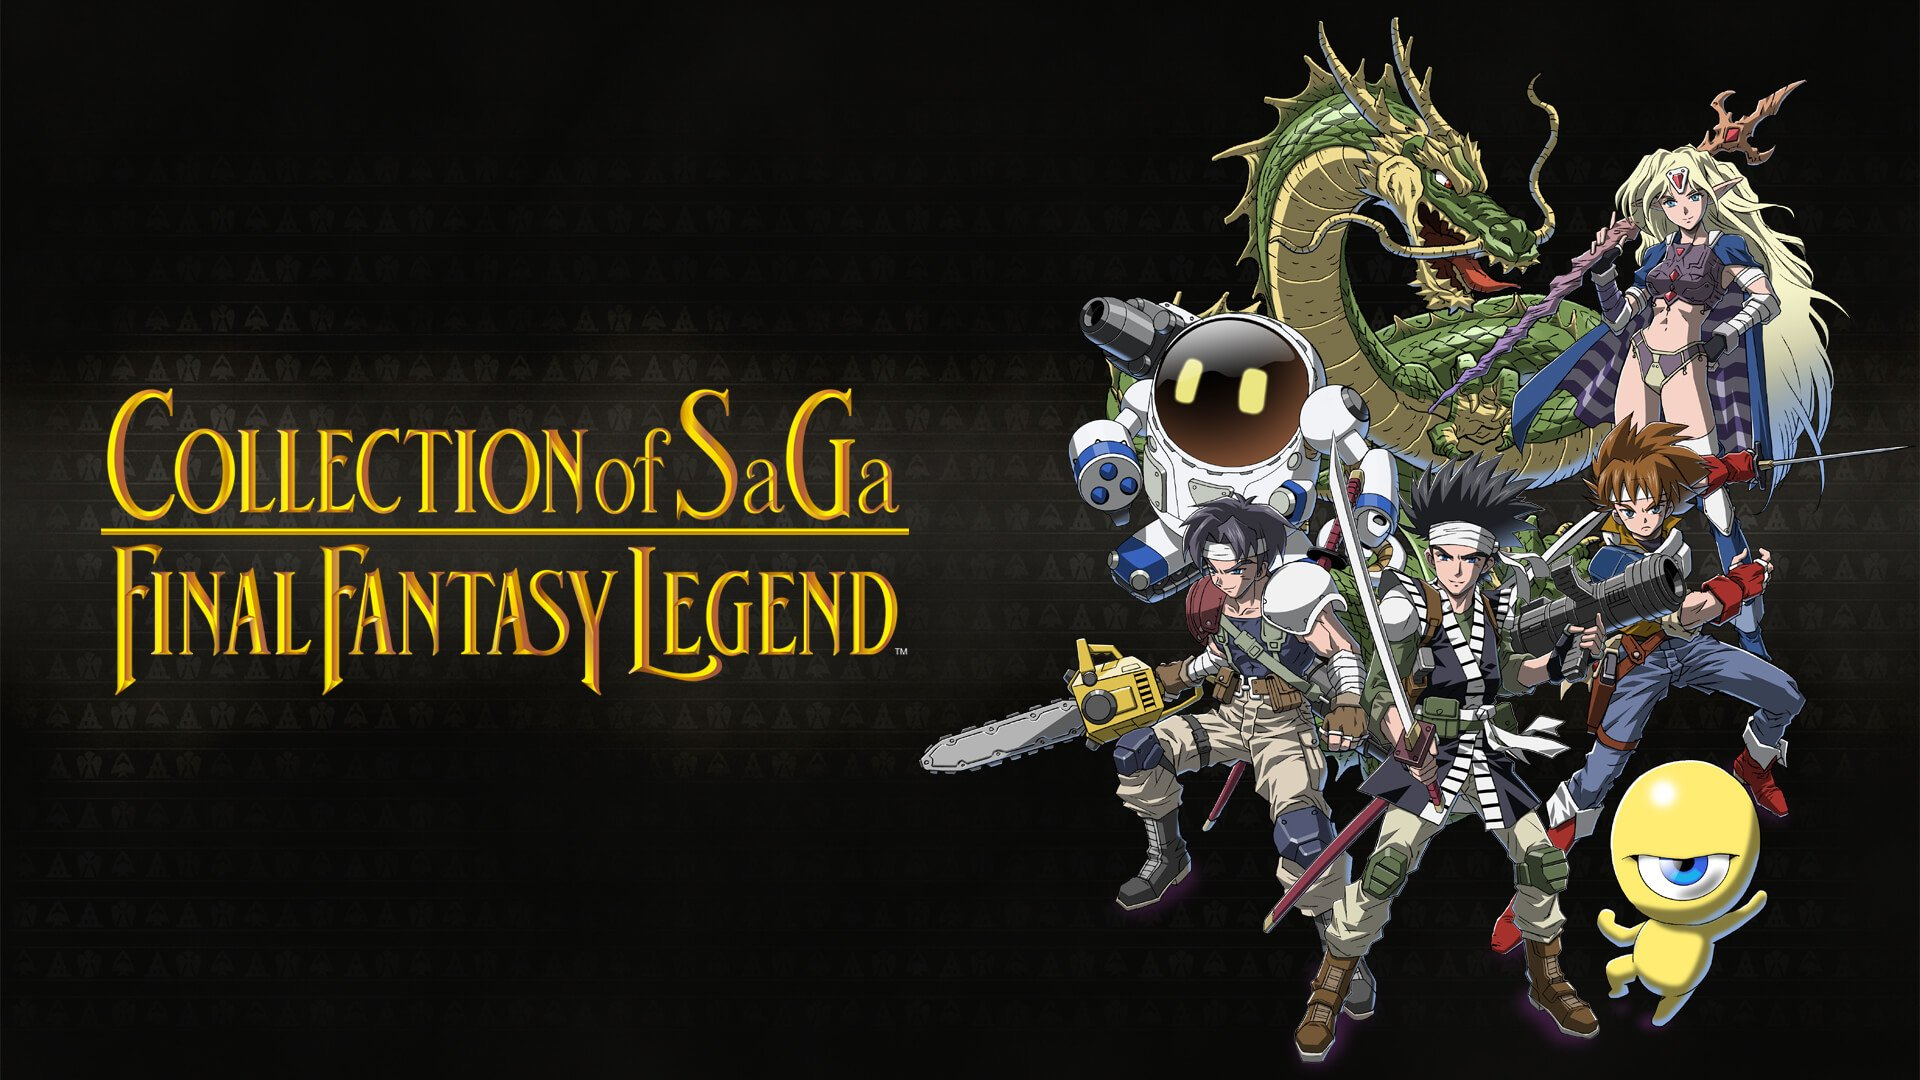 COLLECTION of SaGa FINAL FANTASY LEGEND Releases Today